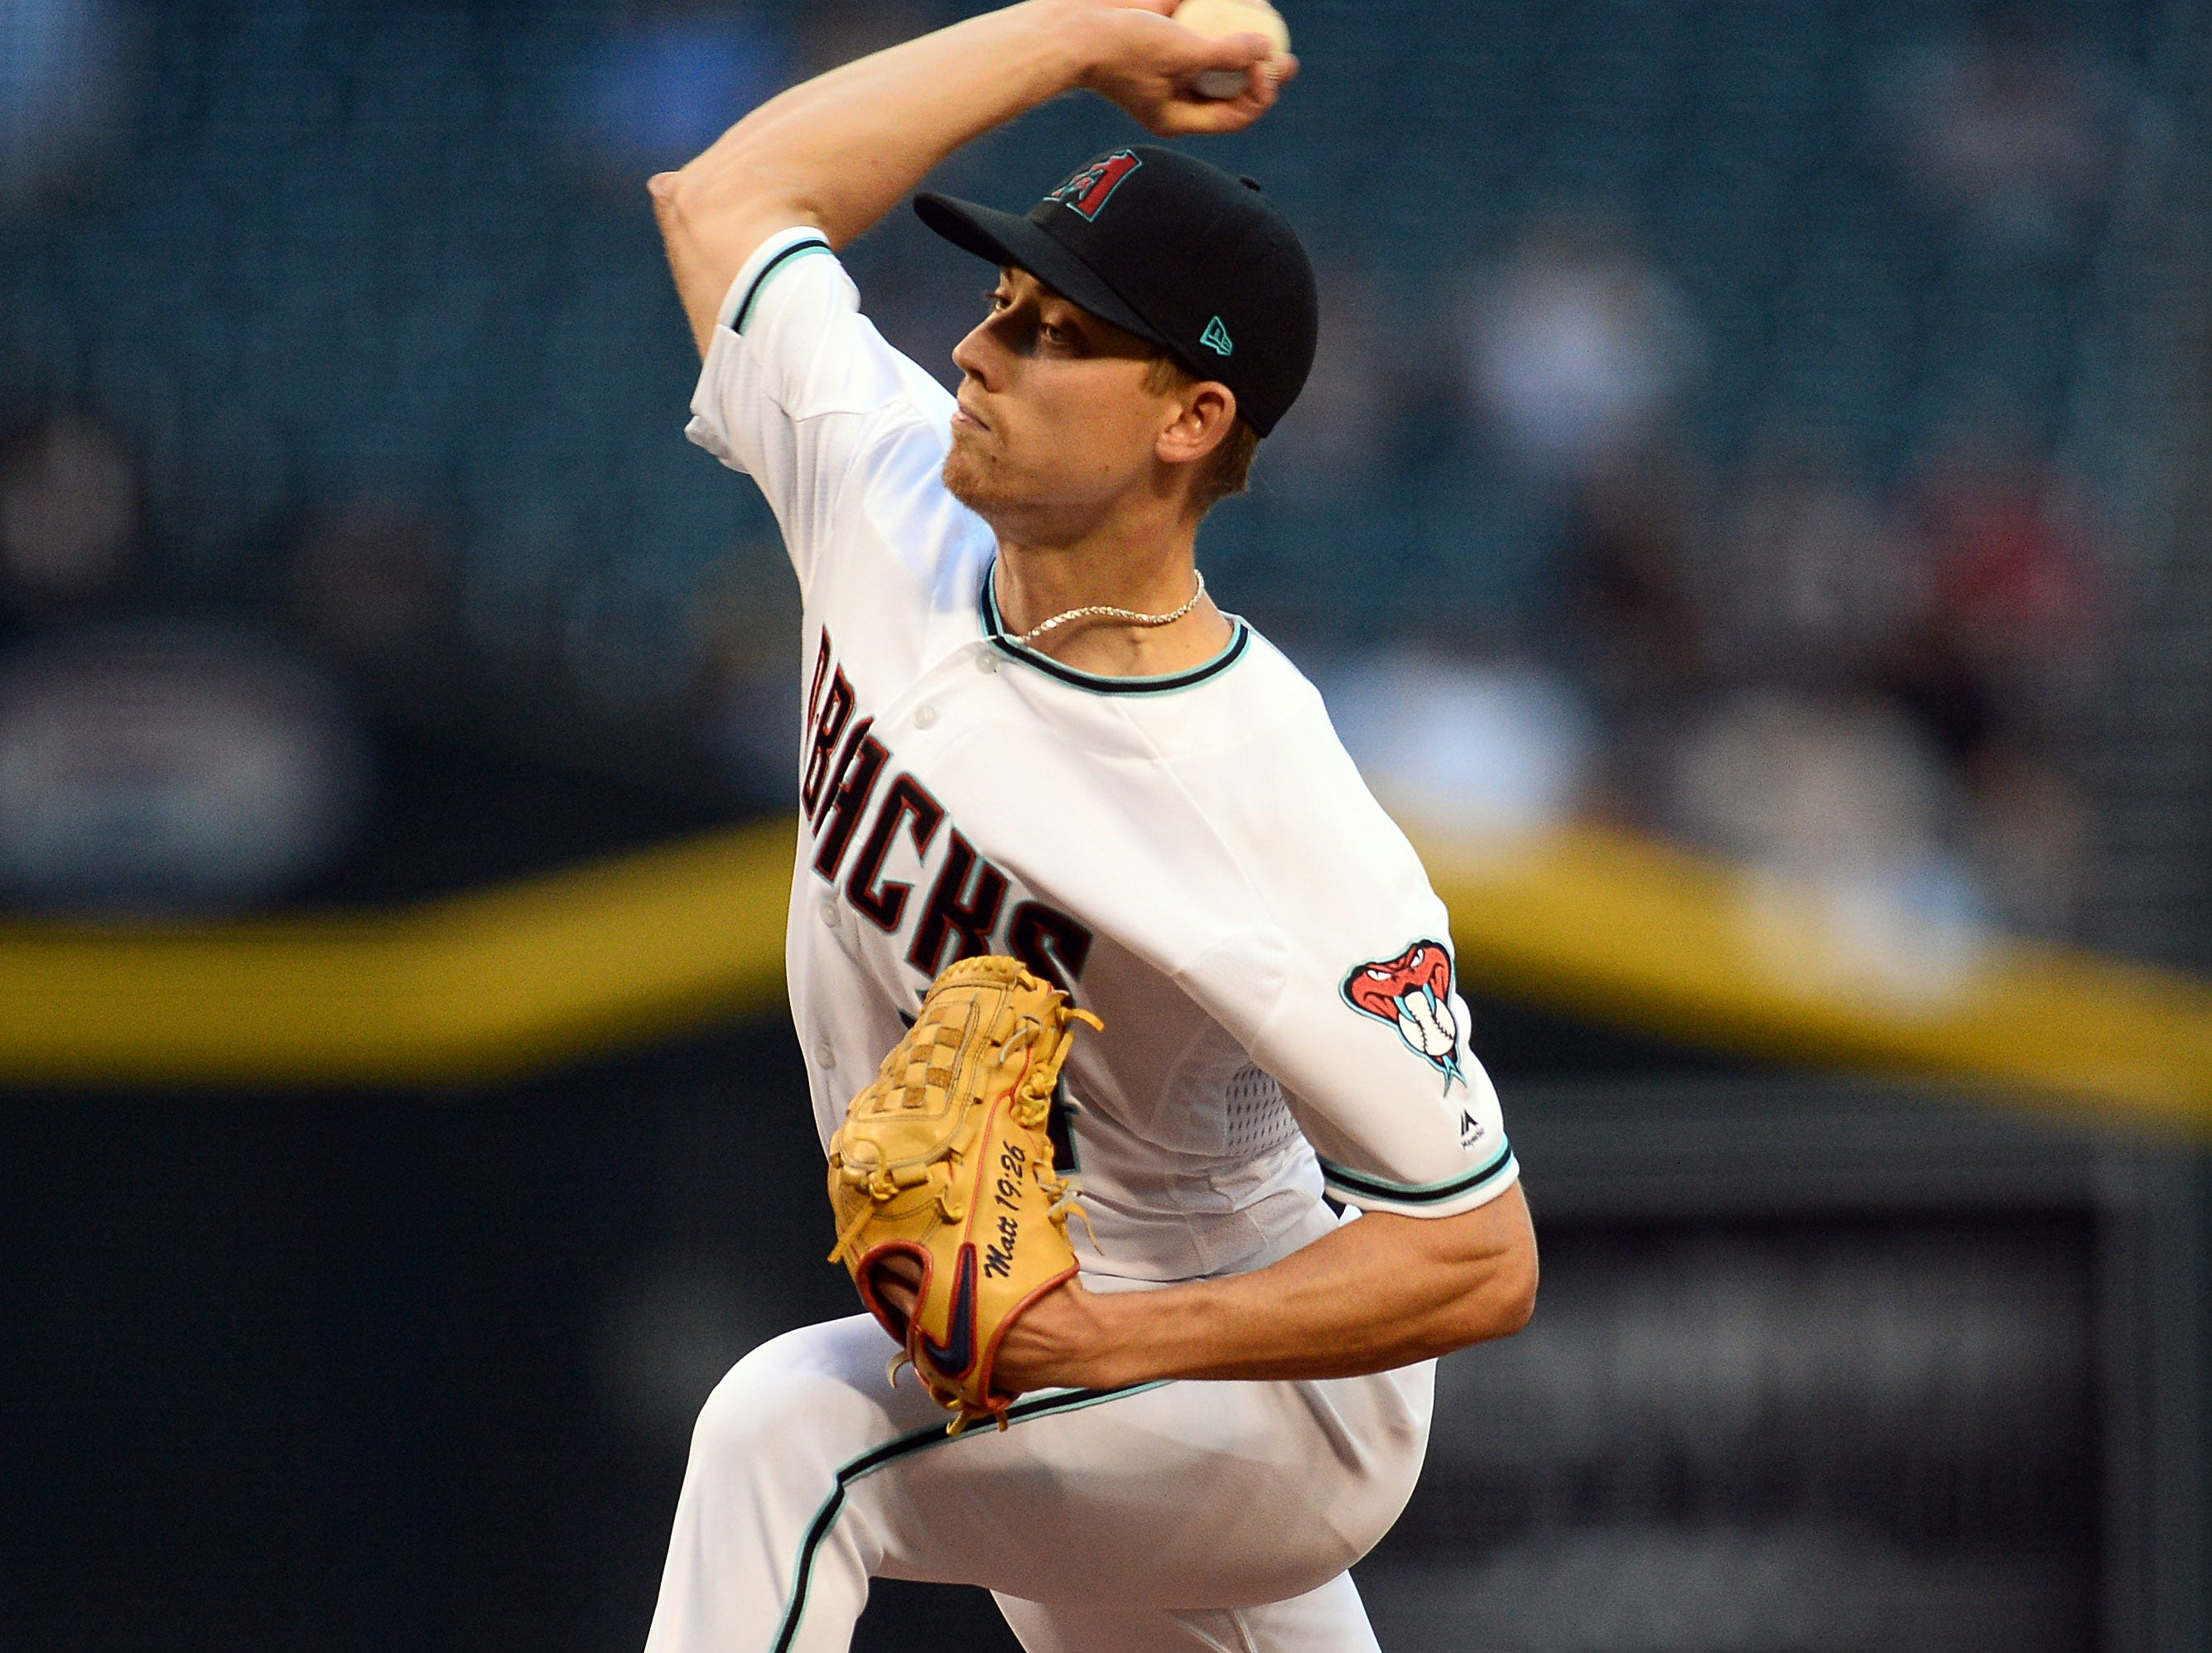 May 14, 2019; Phoenix, AZ, USA; Arizona Diamondbacks starting pitcher Luke Weaver (24) pitches against the Pittsburgh Pirates during the first inning at Chase Field. Mandatory Credit: Joe Camporeale-USA TODAY Sports